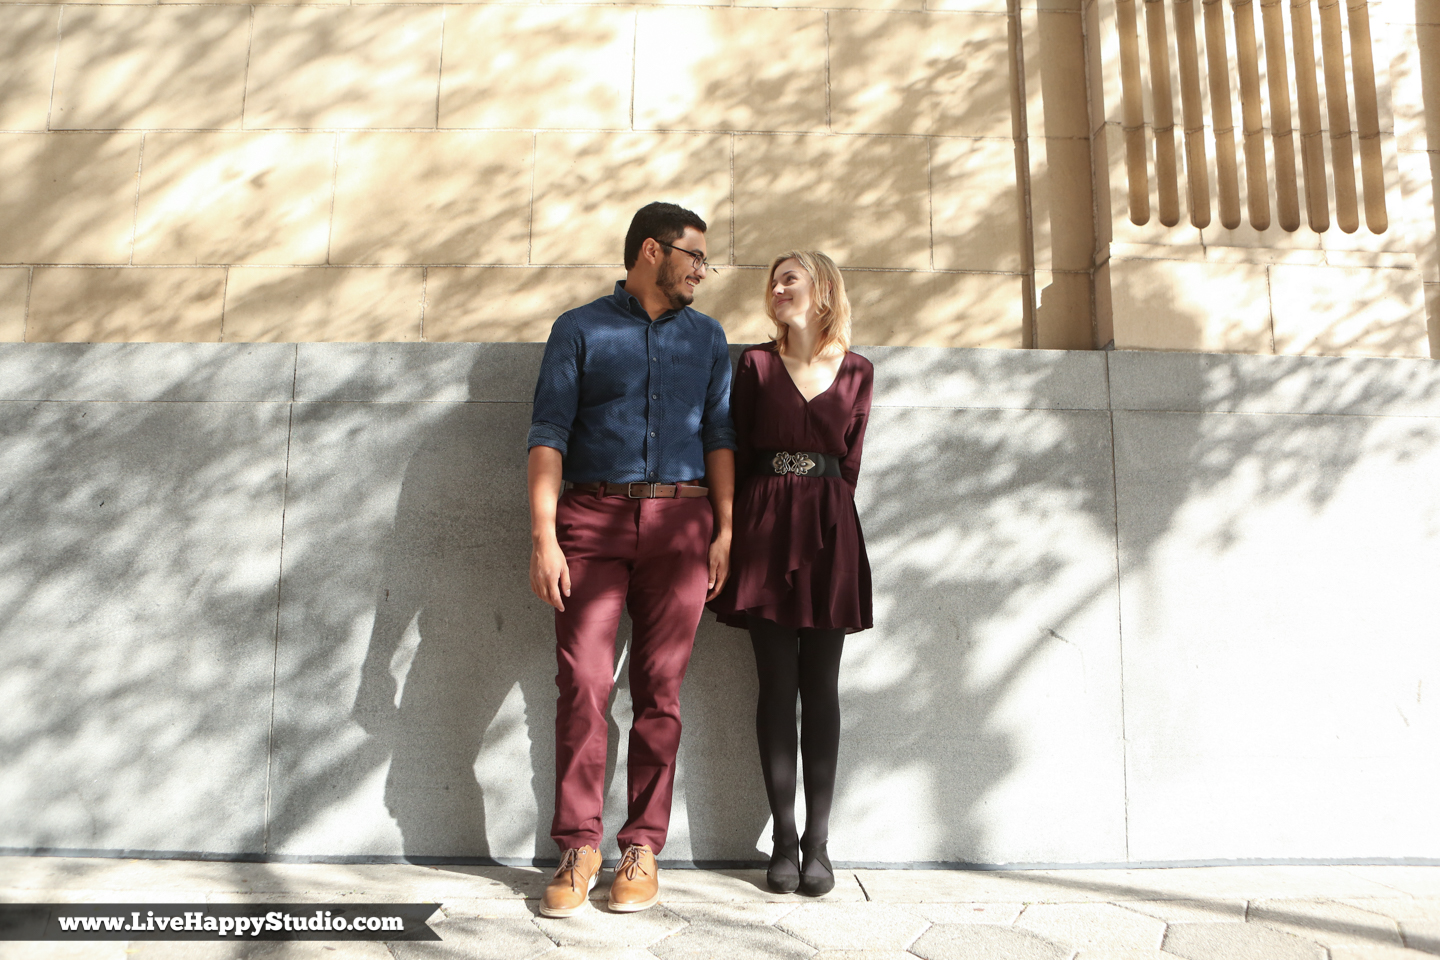 www.livehappystudio.com-church-street-engagement-session-photographer-orlando-central-florida-wedding-photographer-shadows-trees-building11.jpg